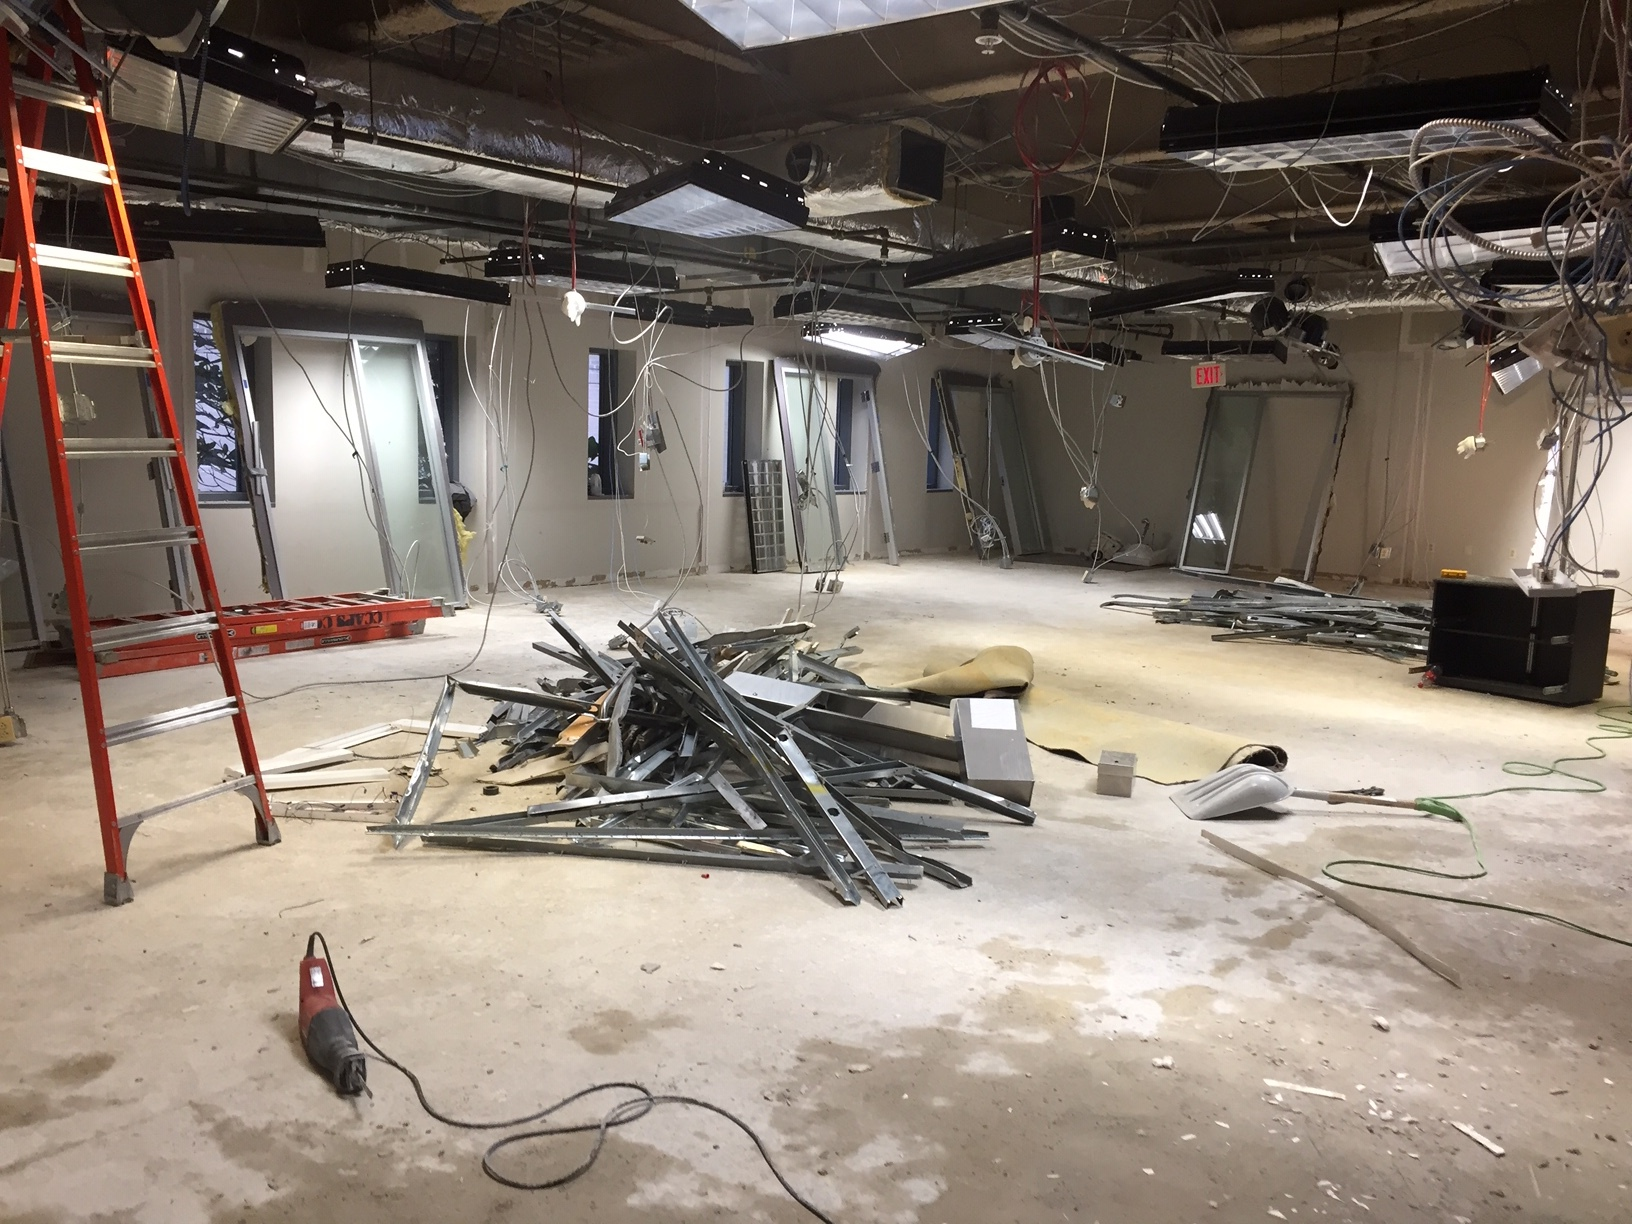 January 2019  - What used to be the conference room and administrative offices will become the spacious Event Room, requiring demolition of all interior walls.